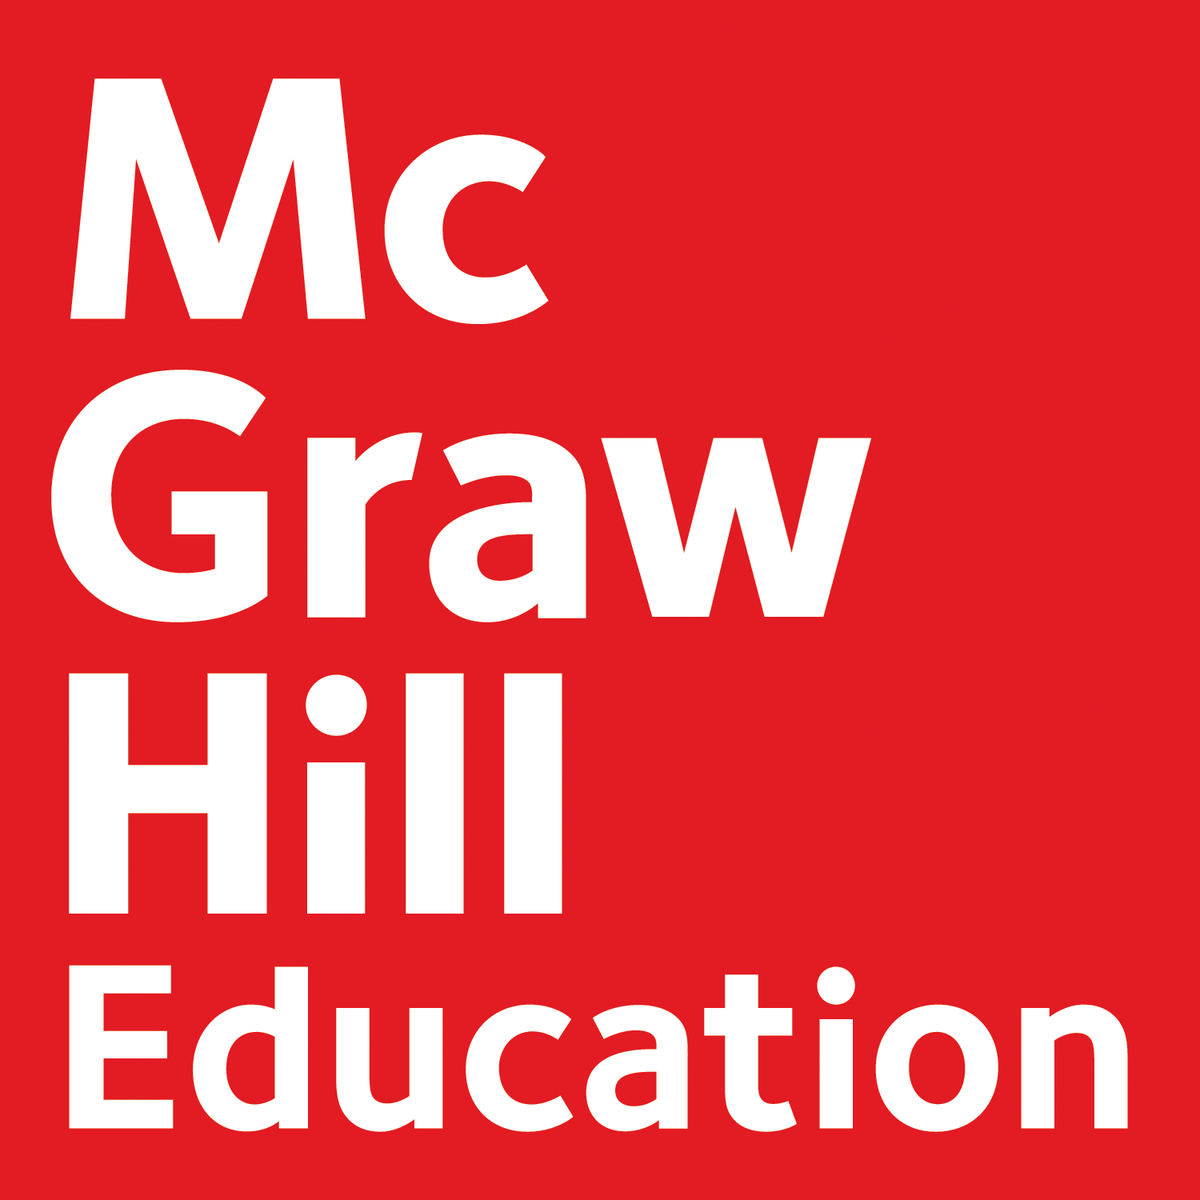 McGraw Hill Education Logo.png